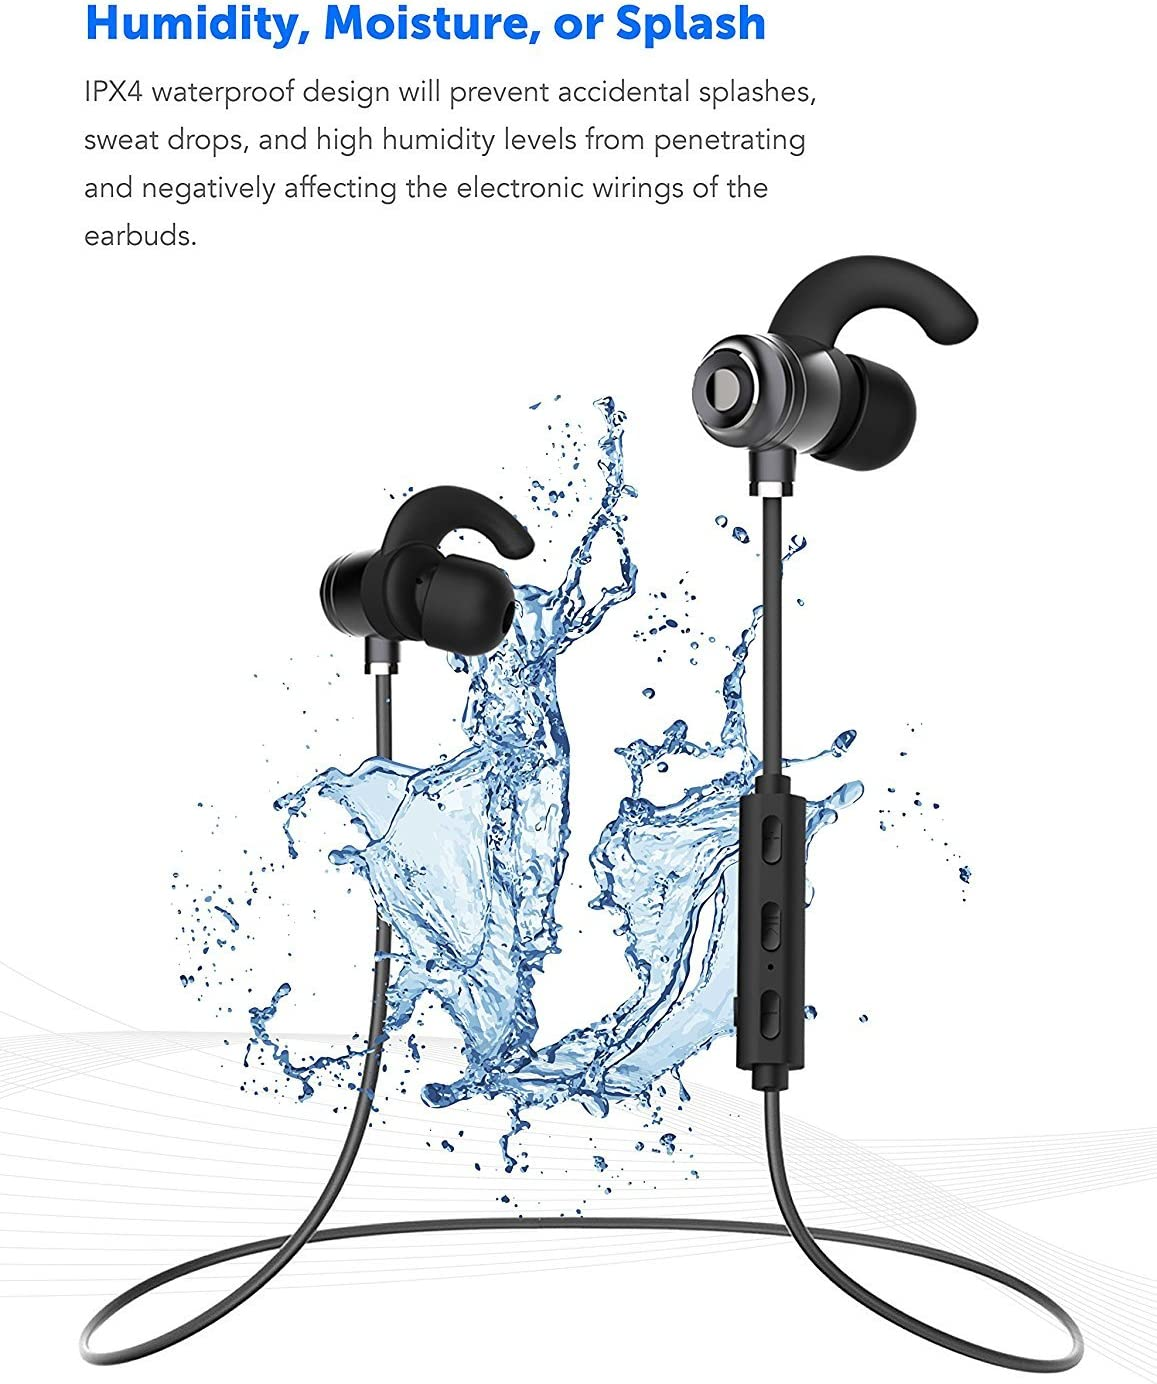 Boxgear Motorola Moto E Dual SIM Bluetooth Headset in-Ear Running Earbuds IPX4 Waterproof with Mic Stereo Earphones CVC 6.0 Noise Cancellation Apple Works with Samsung,Google Pixel,LG